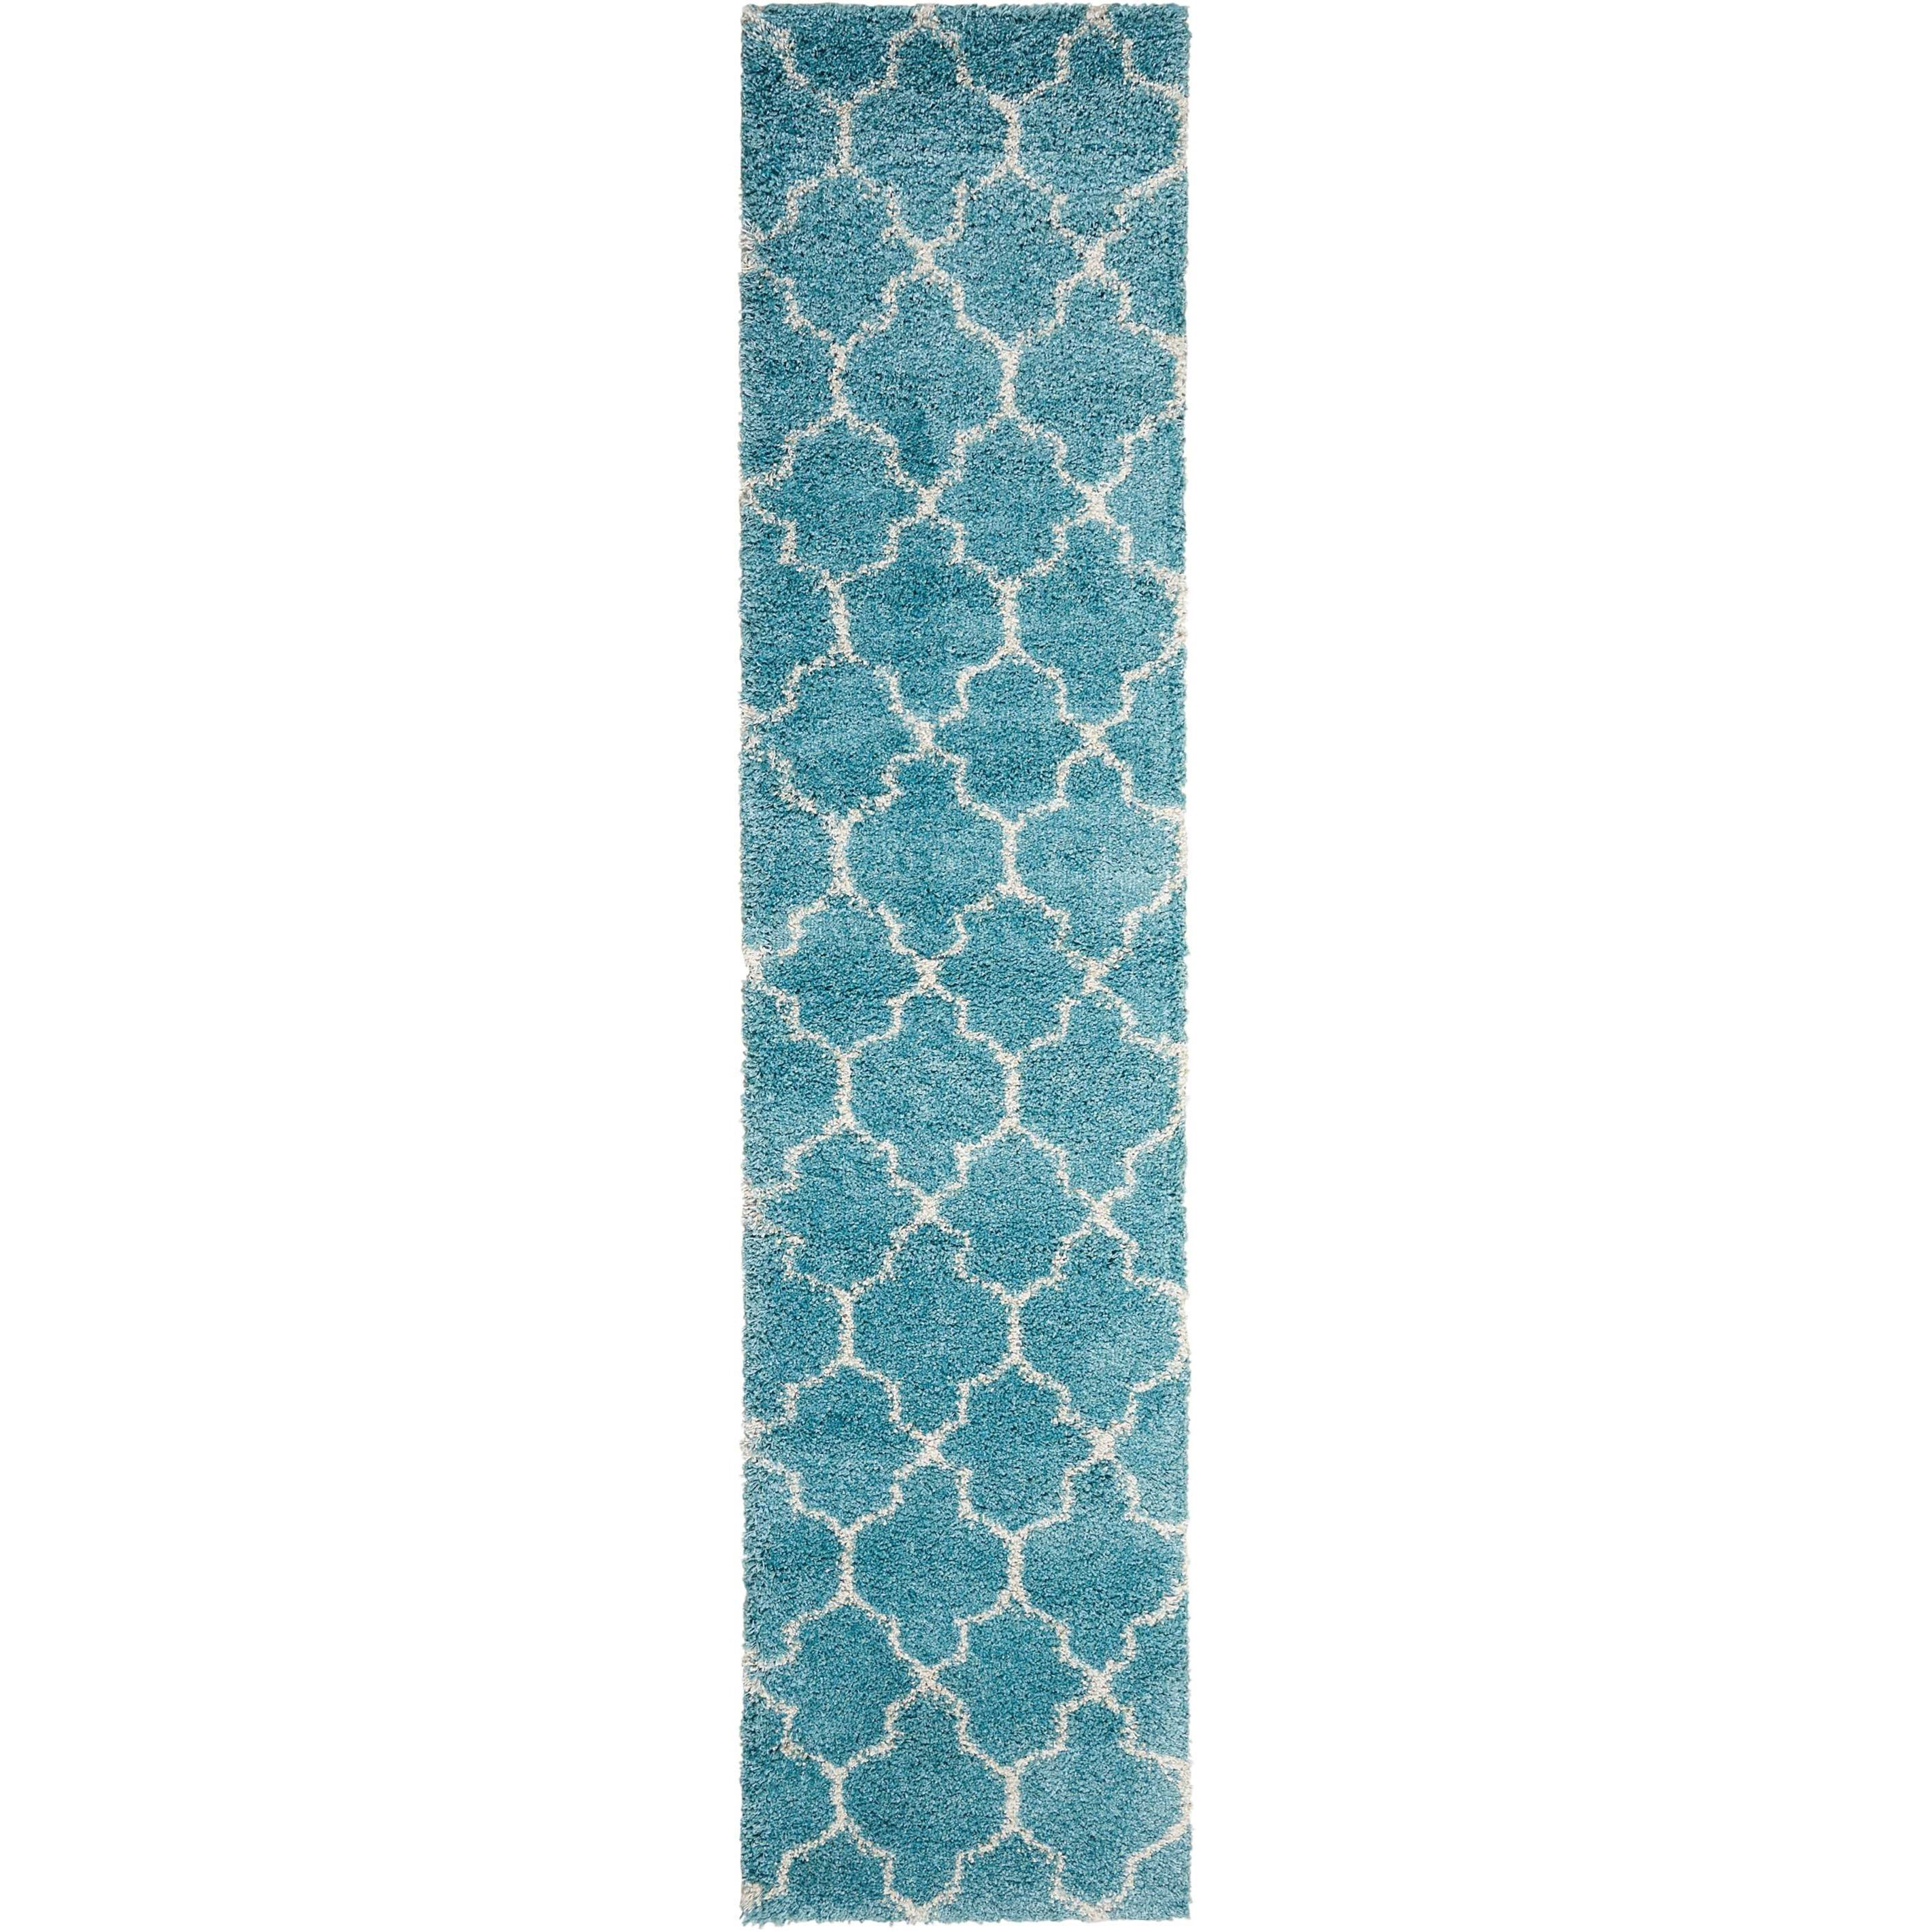 Amore Amore AMOR2 Blue 10' Runner  Hallway Rug by Nourison at Home Collections Furniture